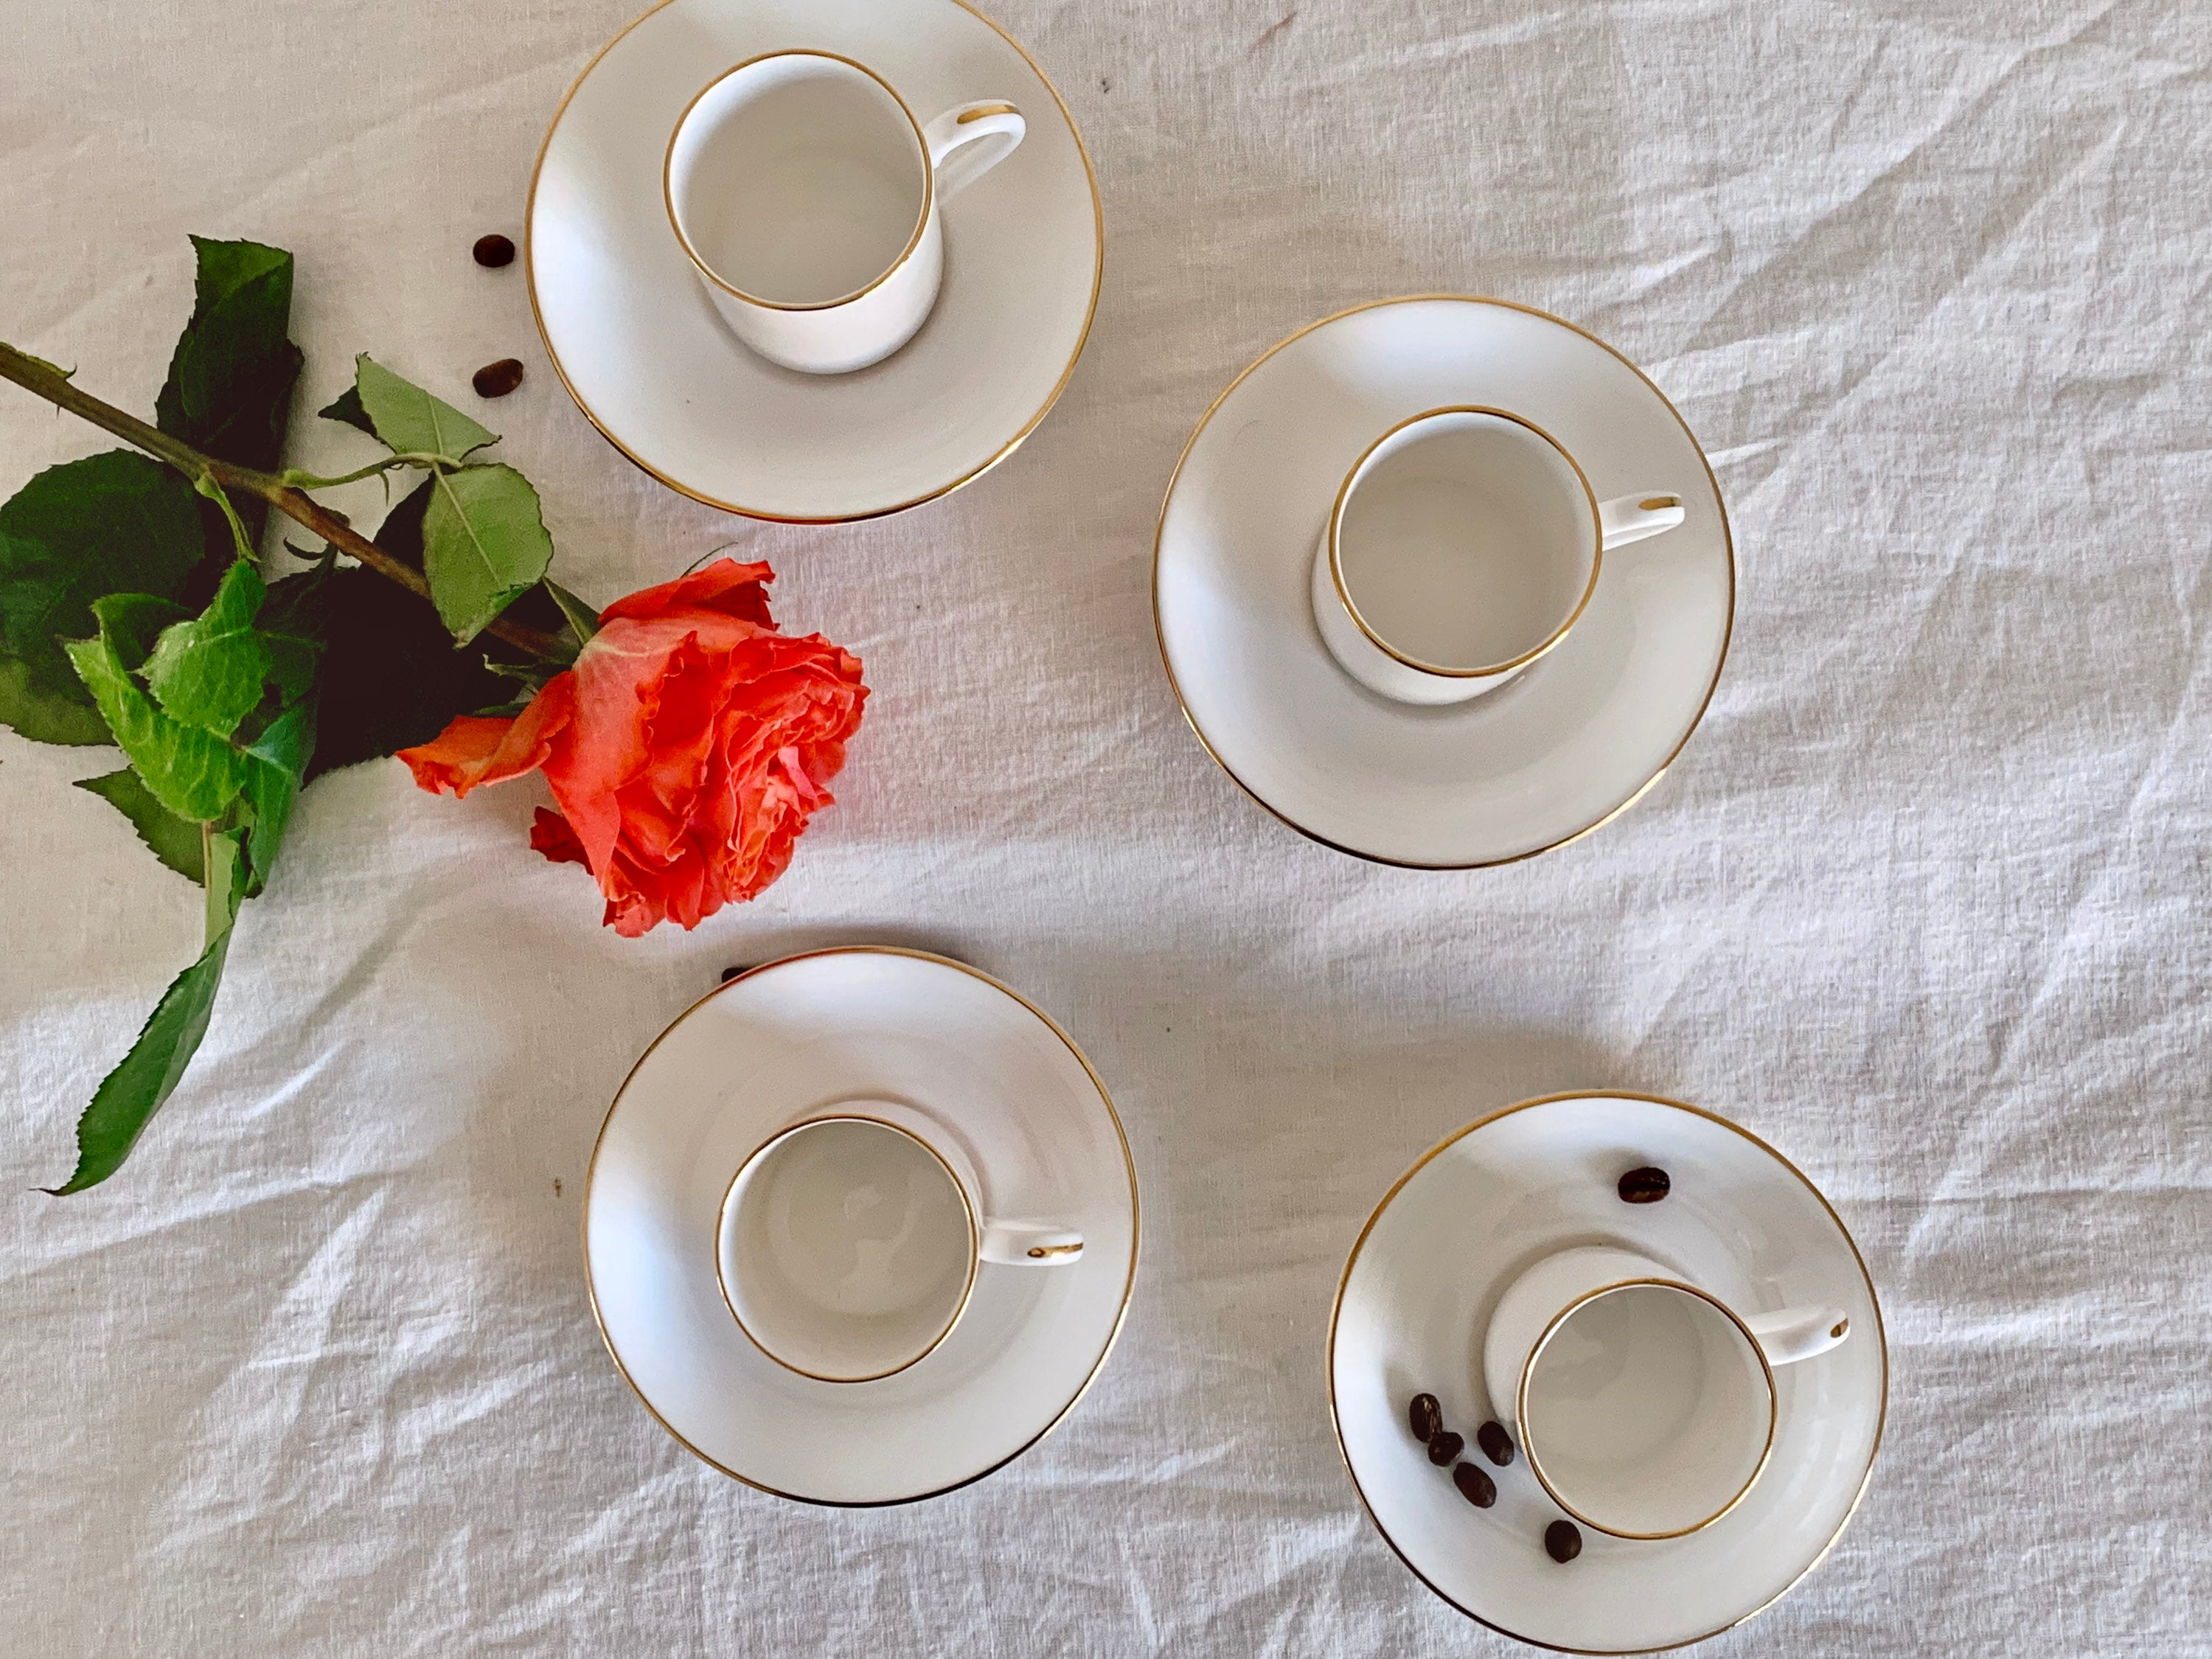 Vintage Crown Staffordshire for Tiffany & Co Bone China Gold Trim Demitasse Cup and Saucer Set | Espresso Cup Set